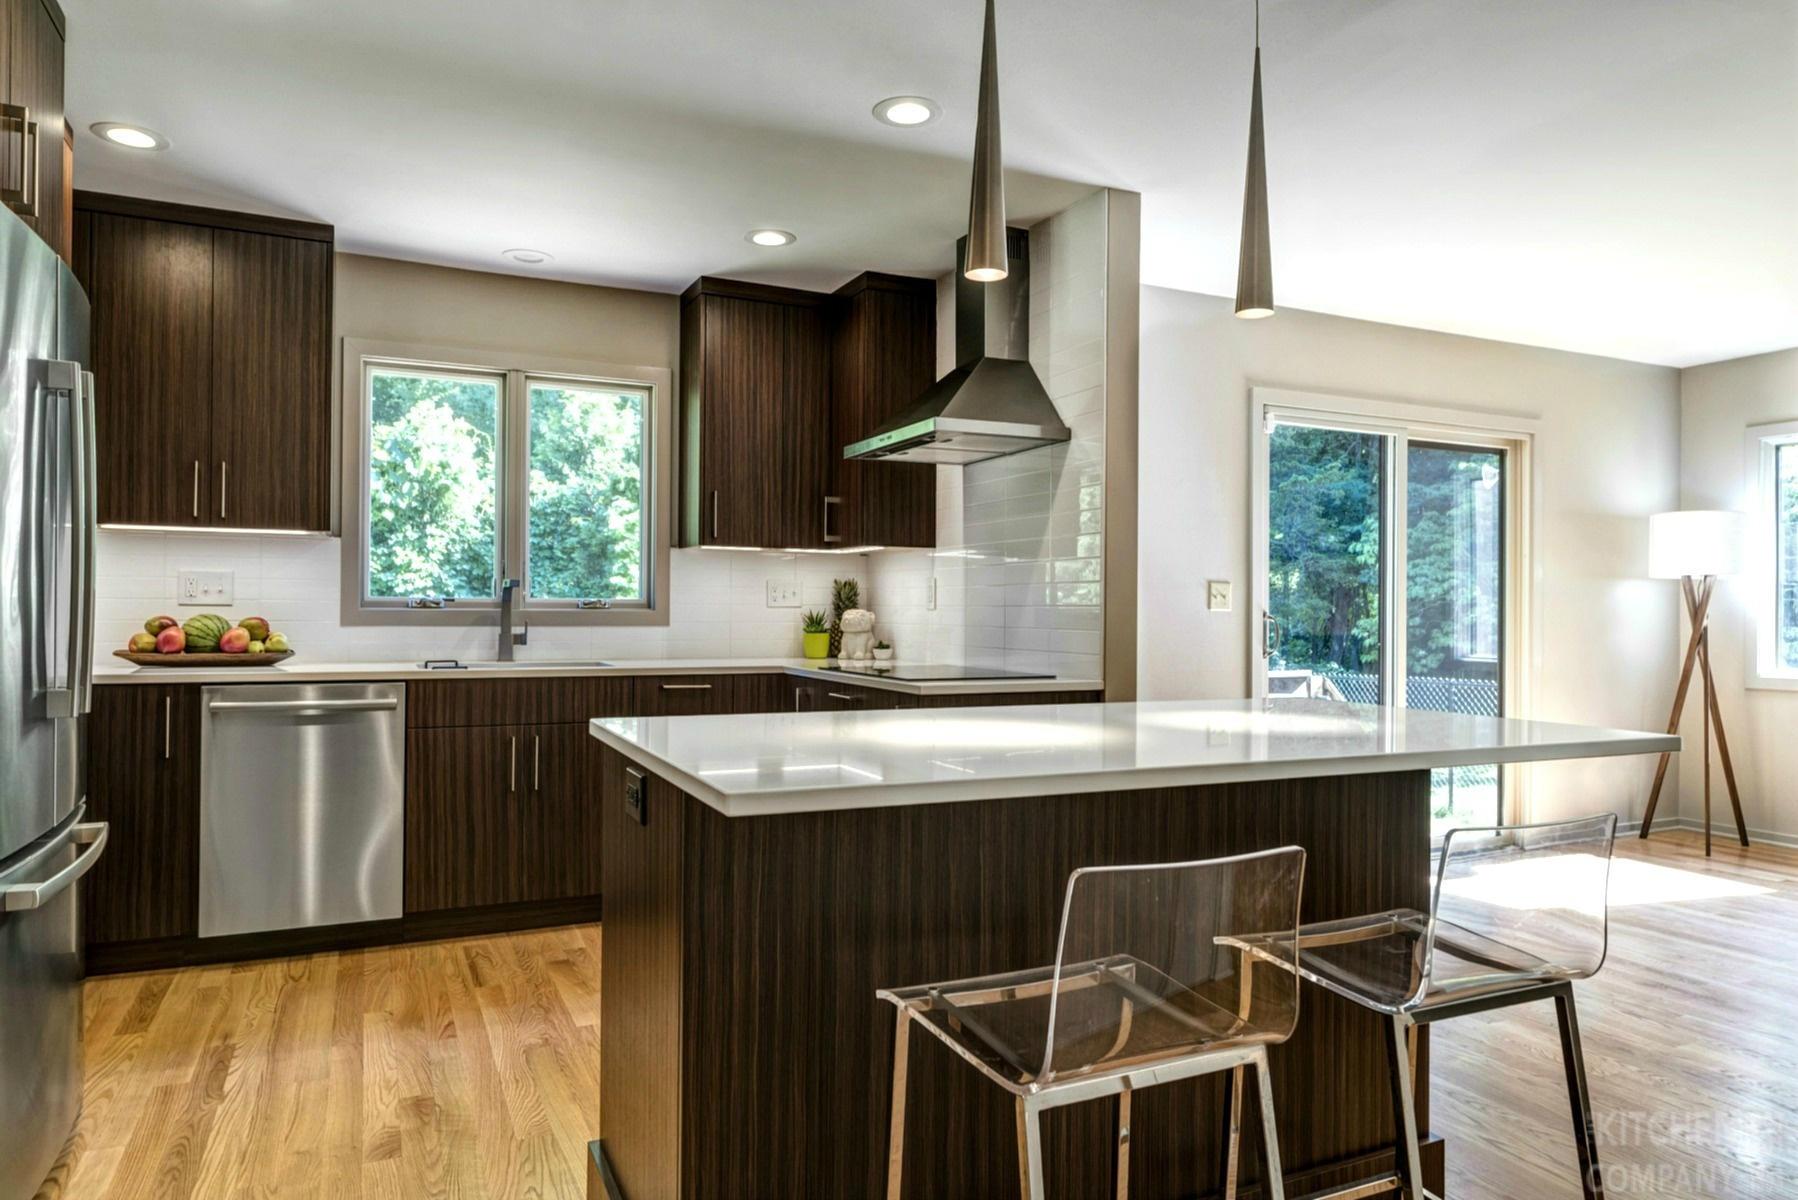 Midcentury modern kitchen in guilford ct kitchen for Modern kitchen company